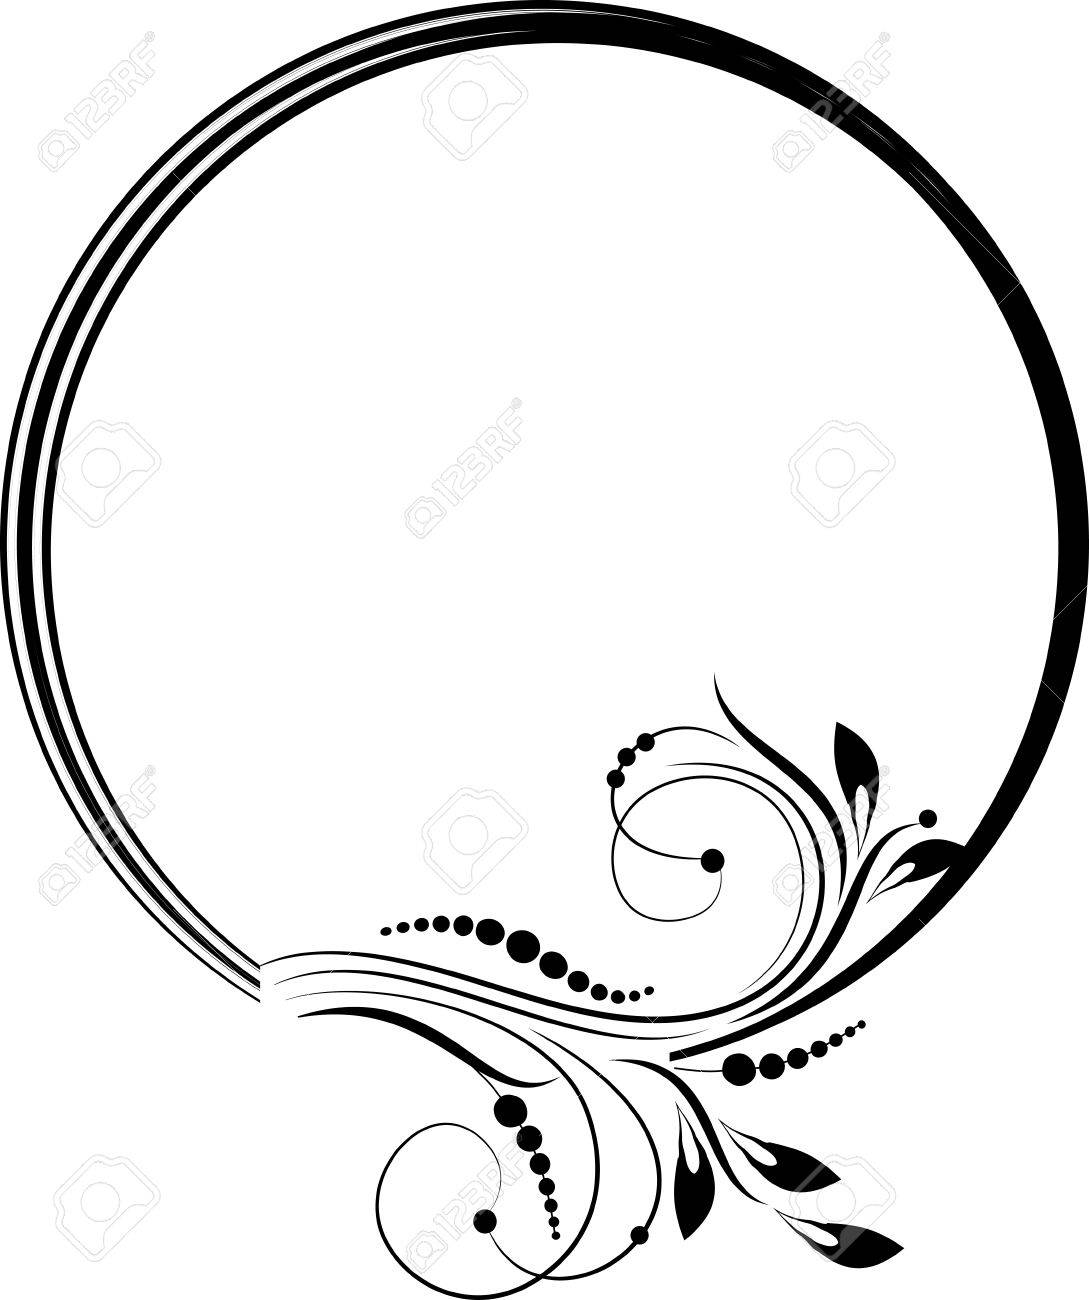 Round frame with decorative branch vector illustration stock - Round Frame With Decorative Branch Stock Vector 23012474